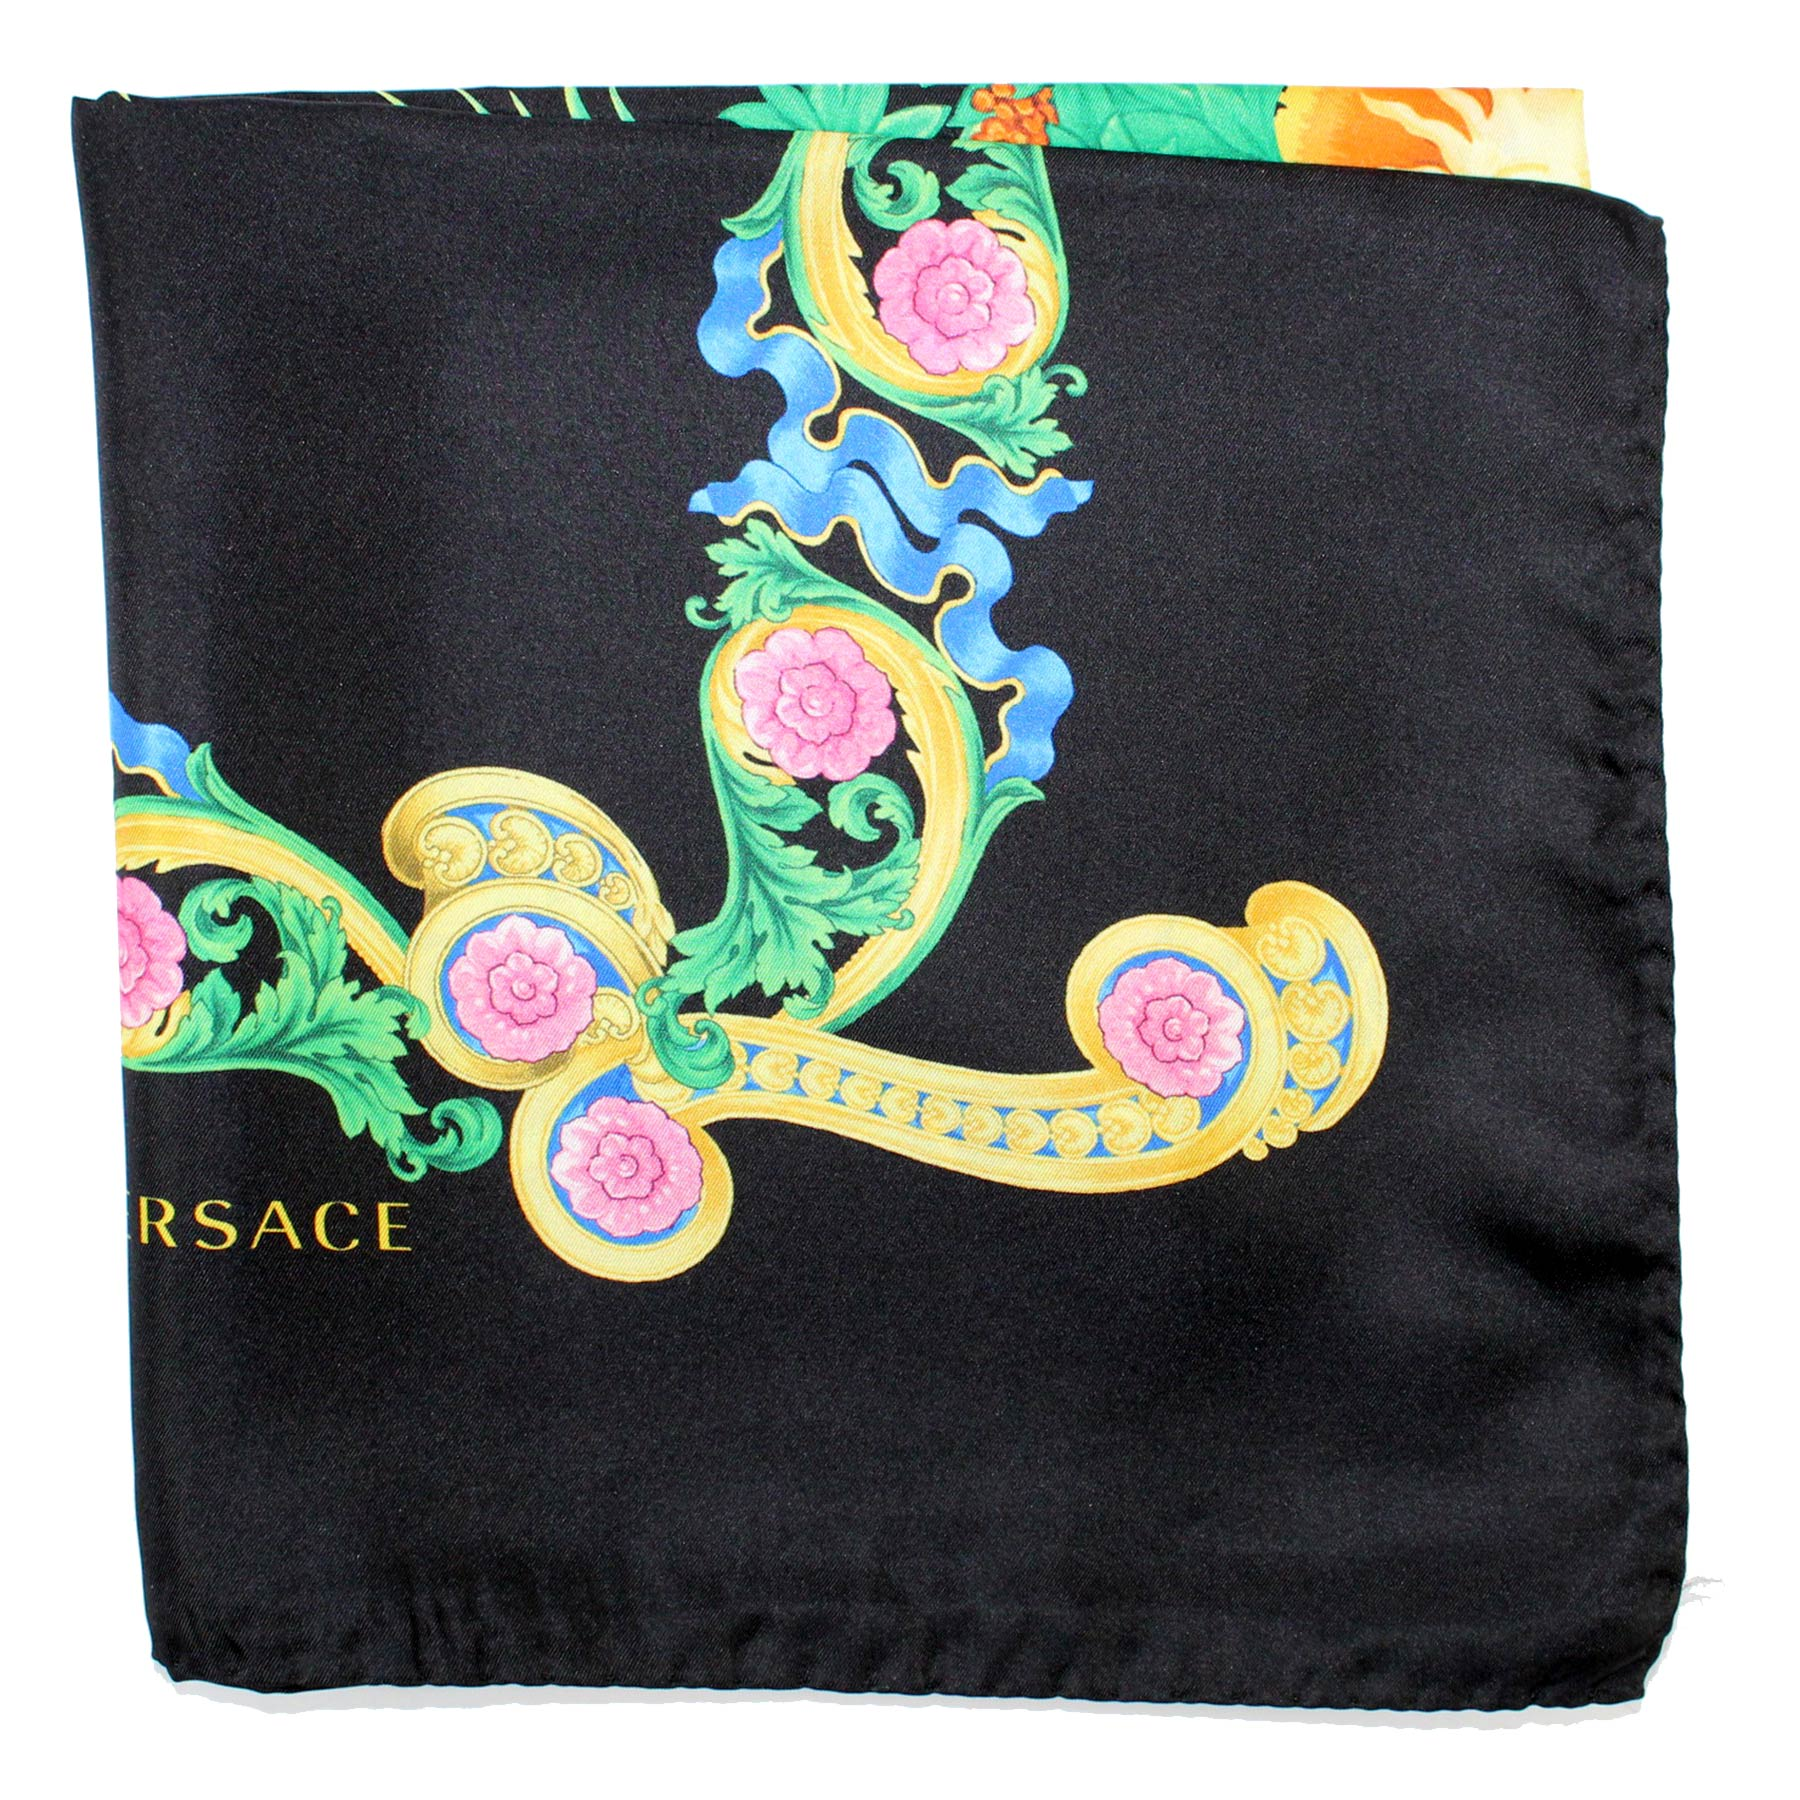 Versace Scarf Black Miami Florida USA Design